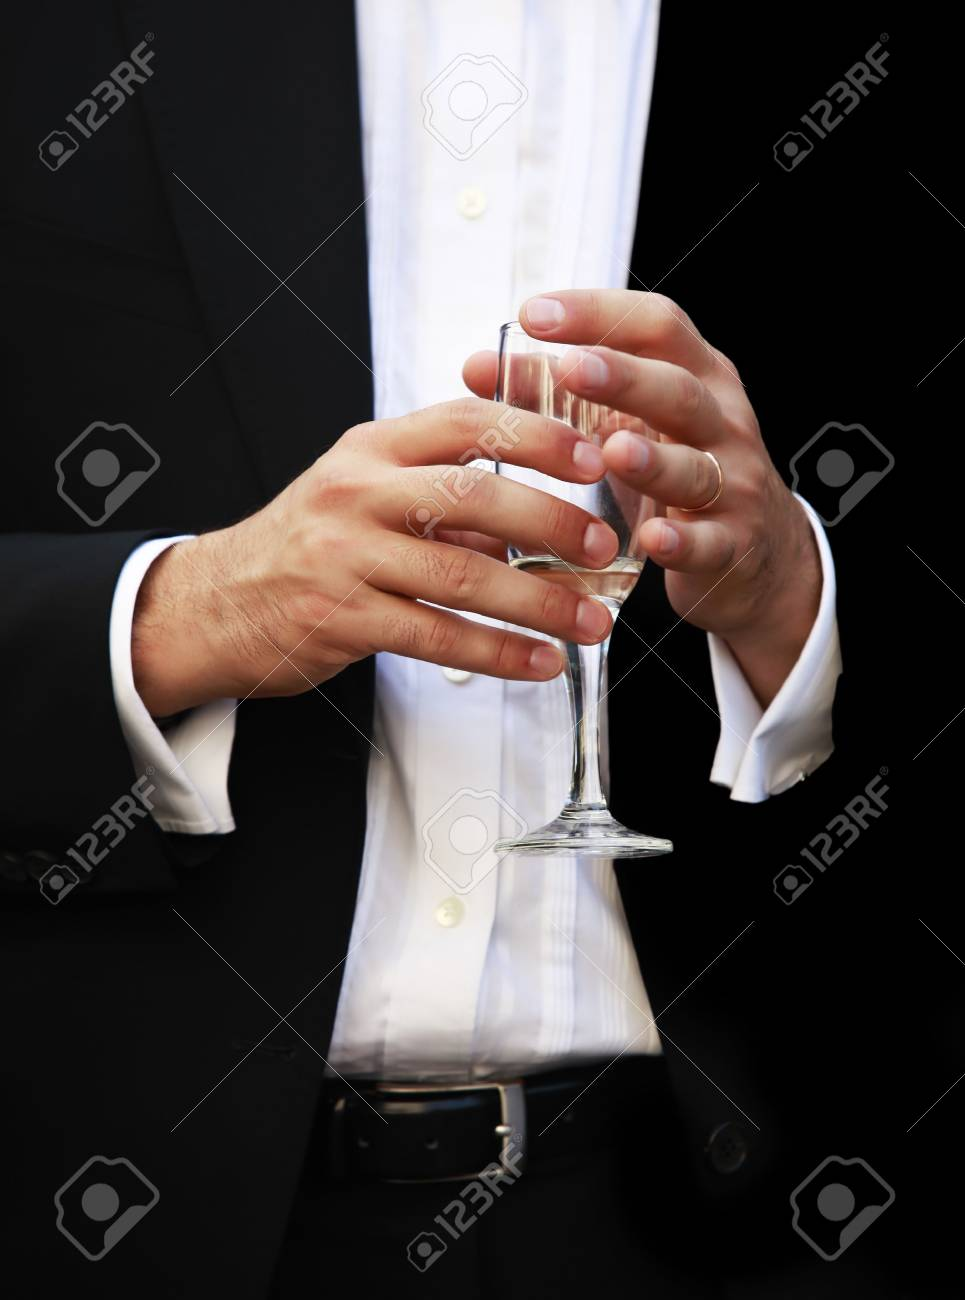 Glass of champagne in a hand of the groom Stock Photo - 5331077